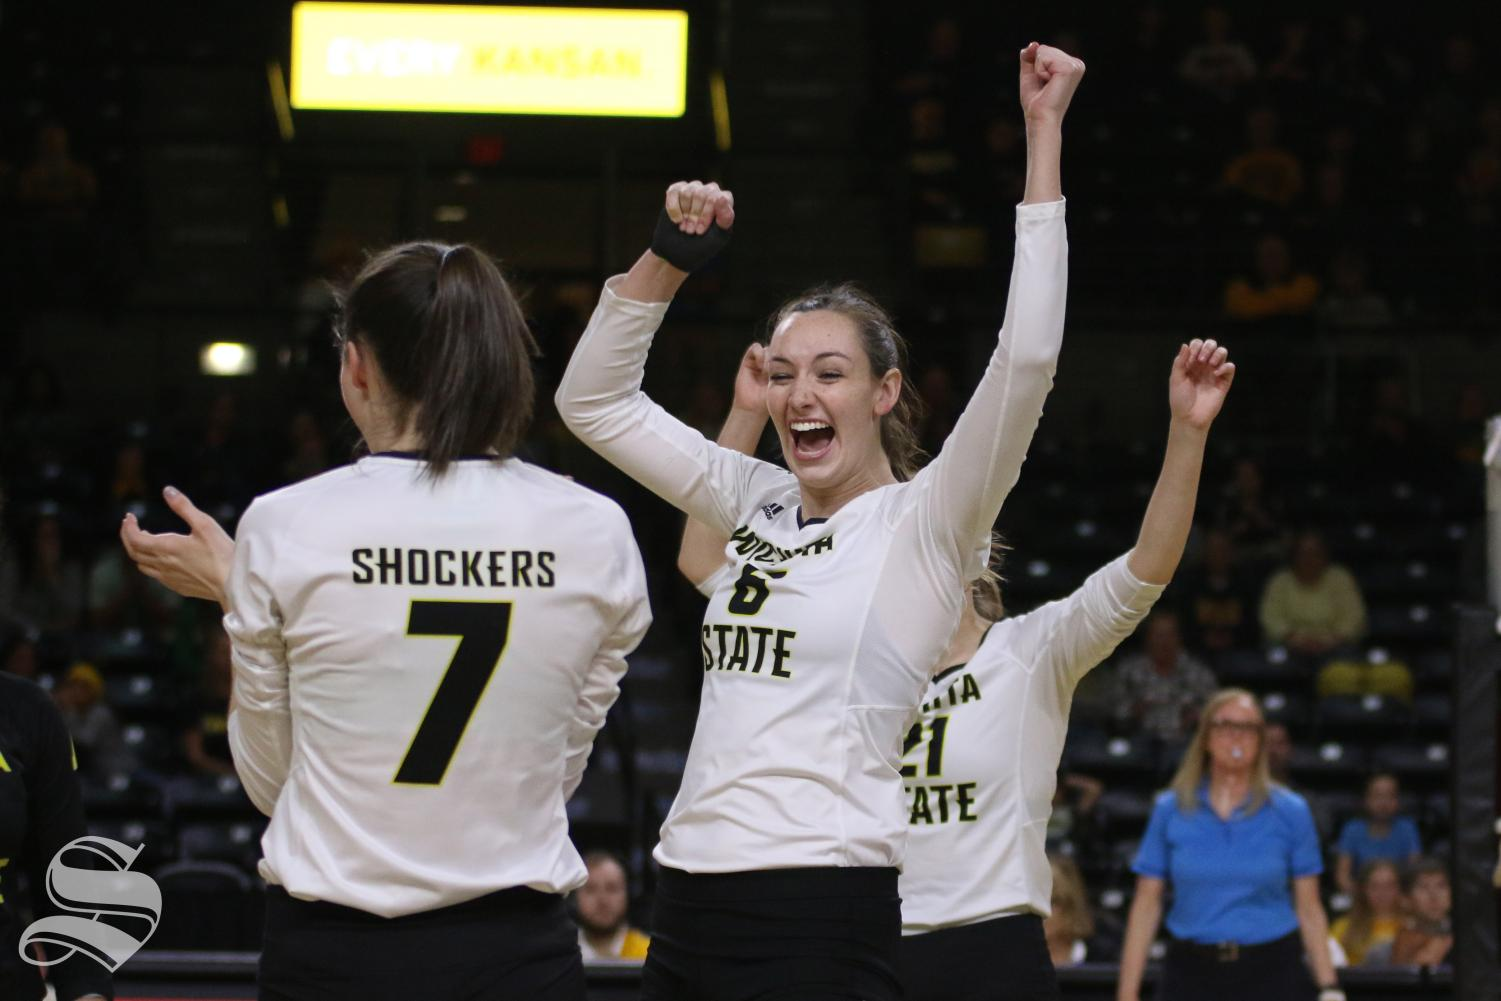 Members of Wichita State's volleyball team celebrate after scoring against North Texas last season.